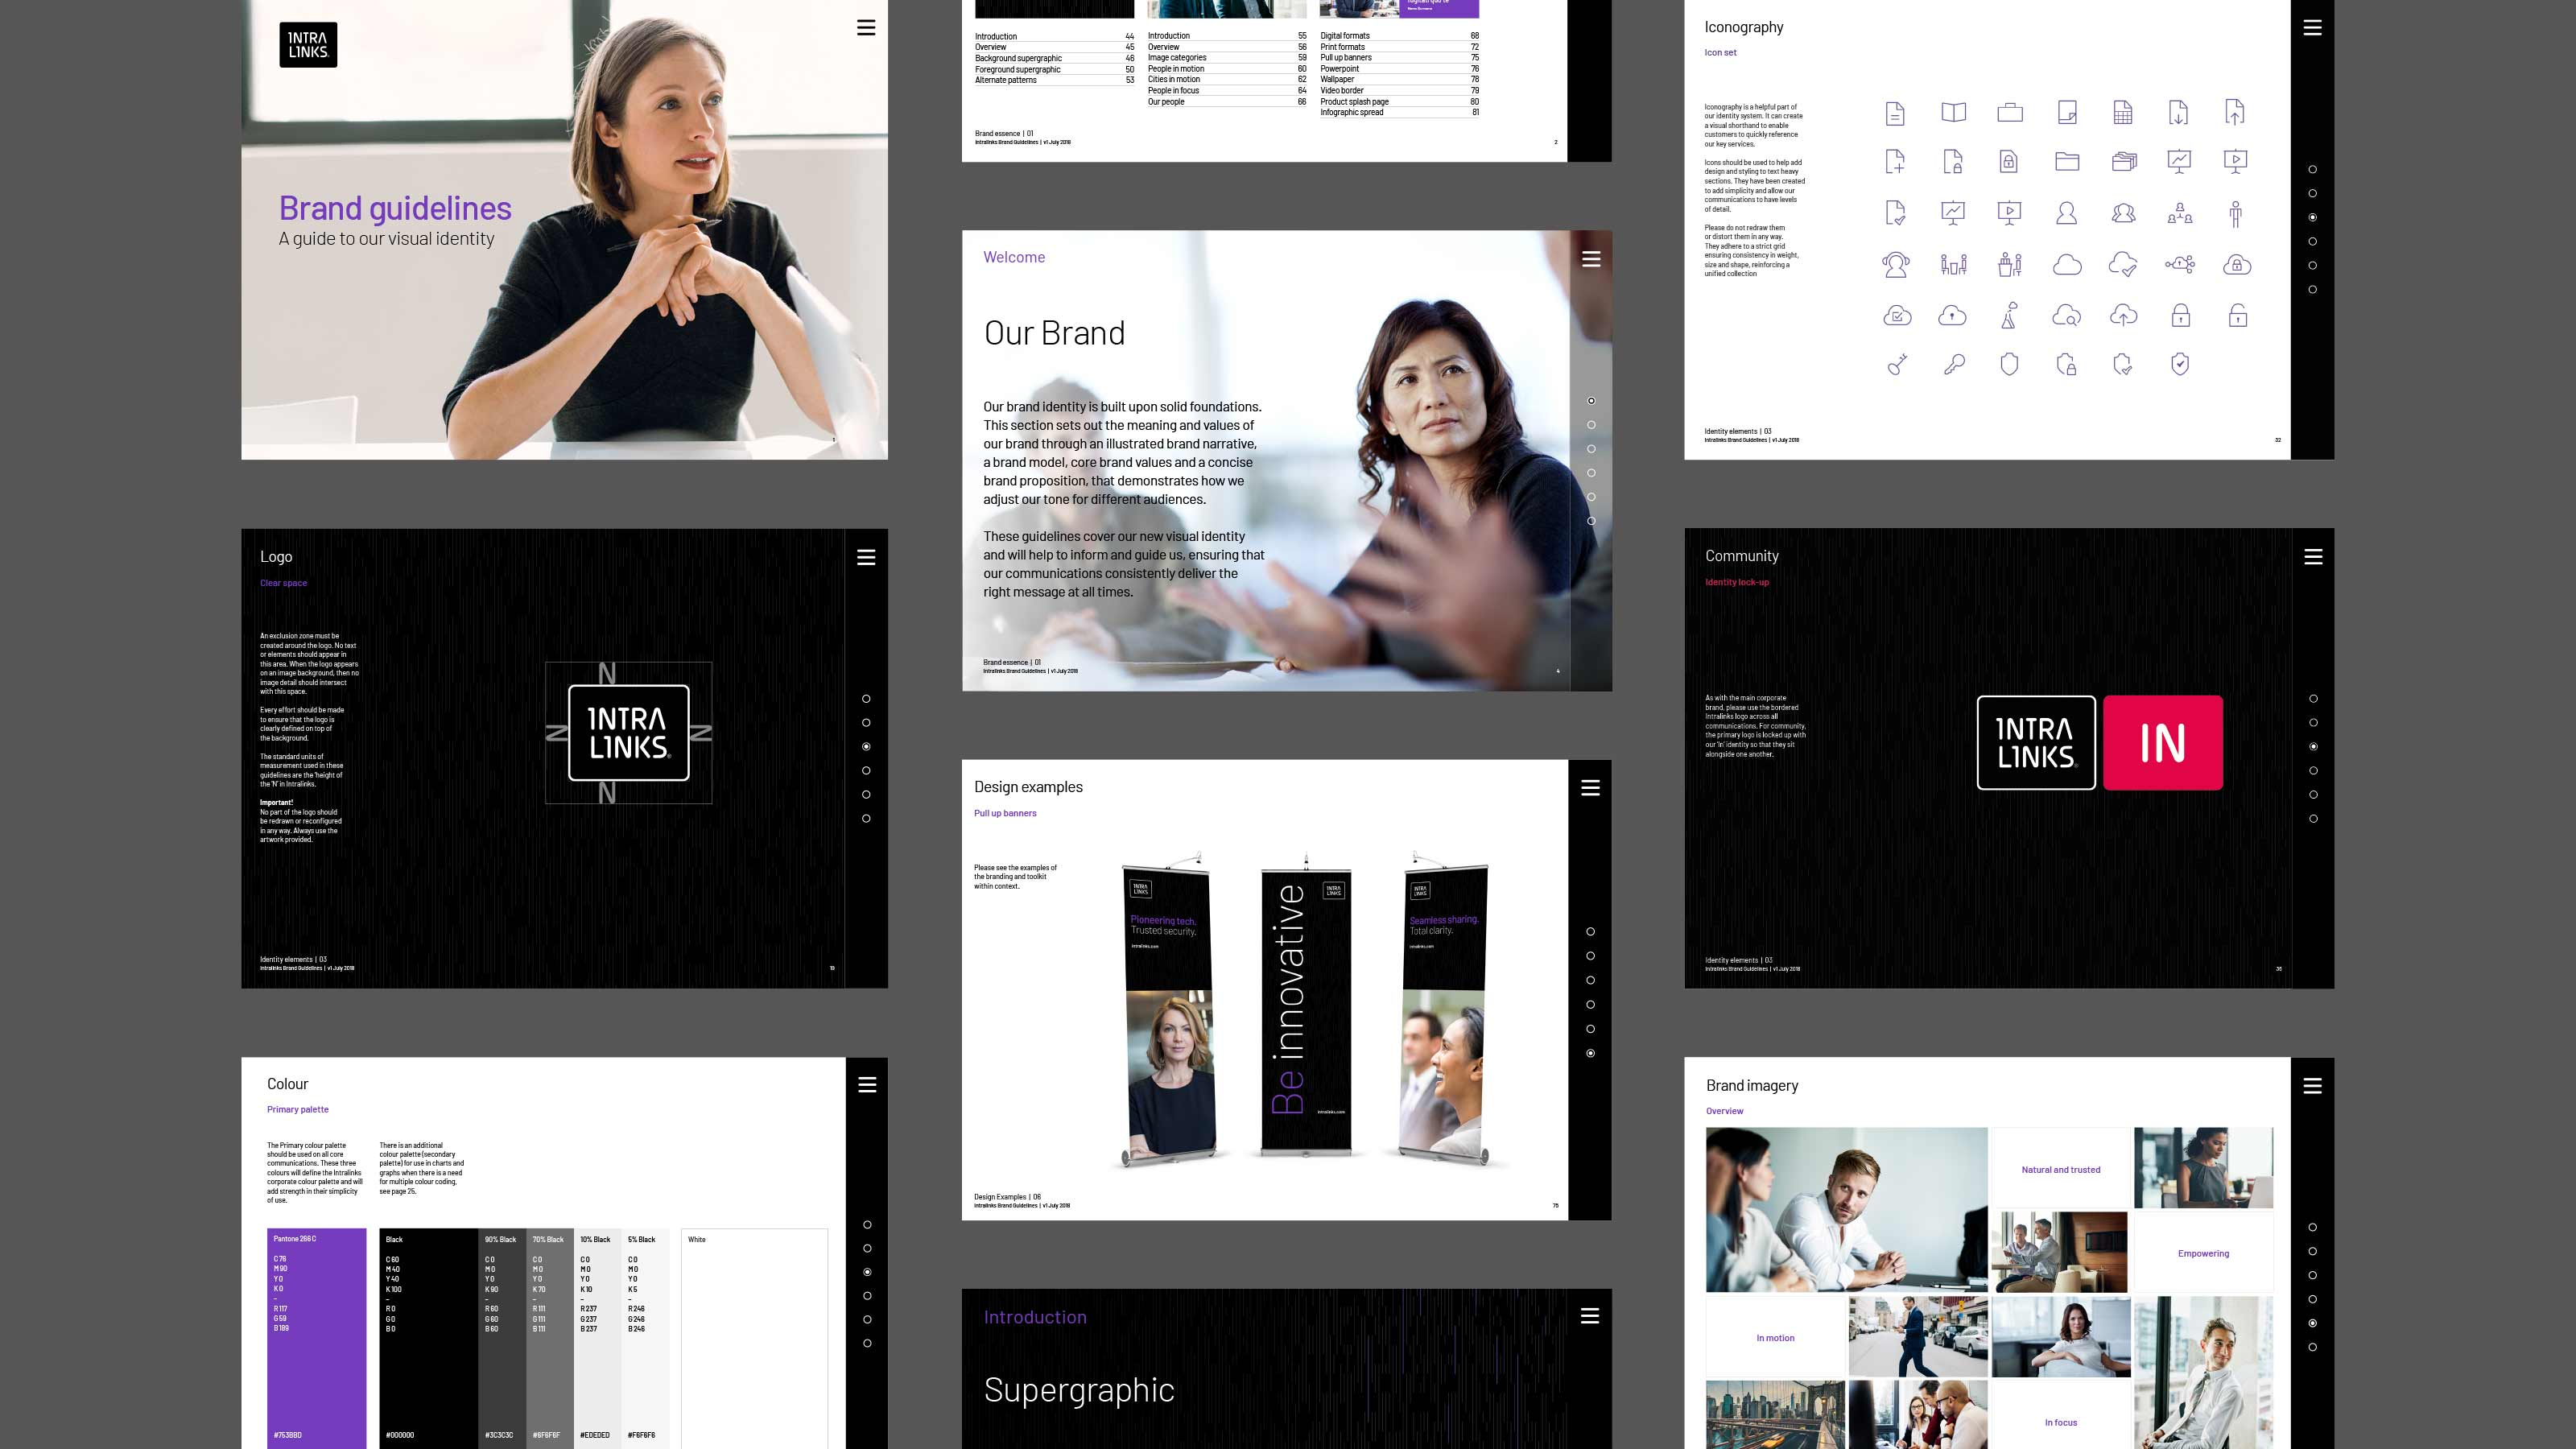 Intralinks_Brand_design_layout_screens